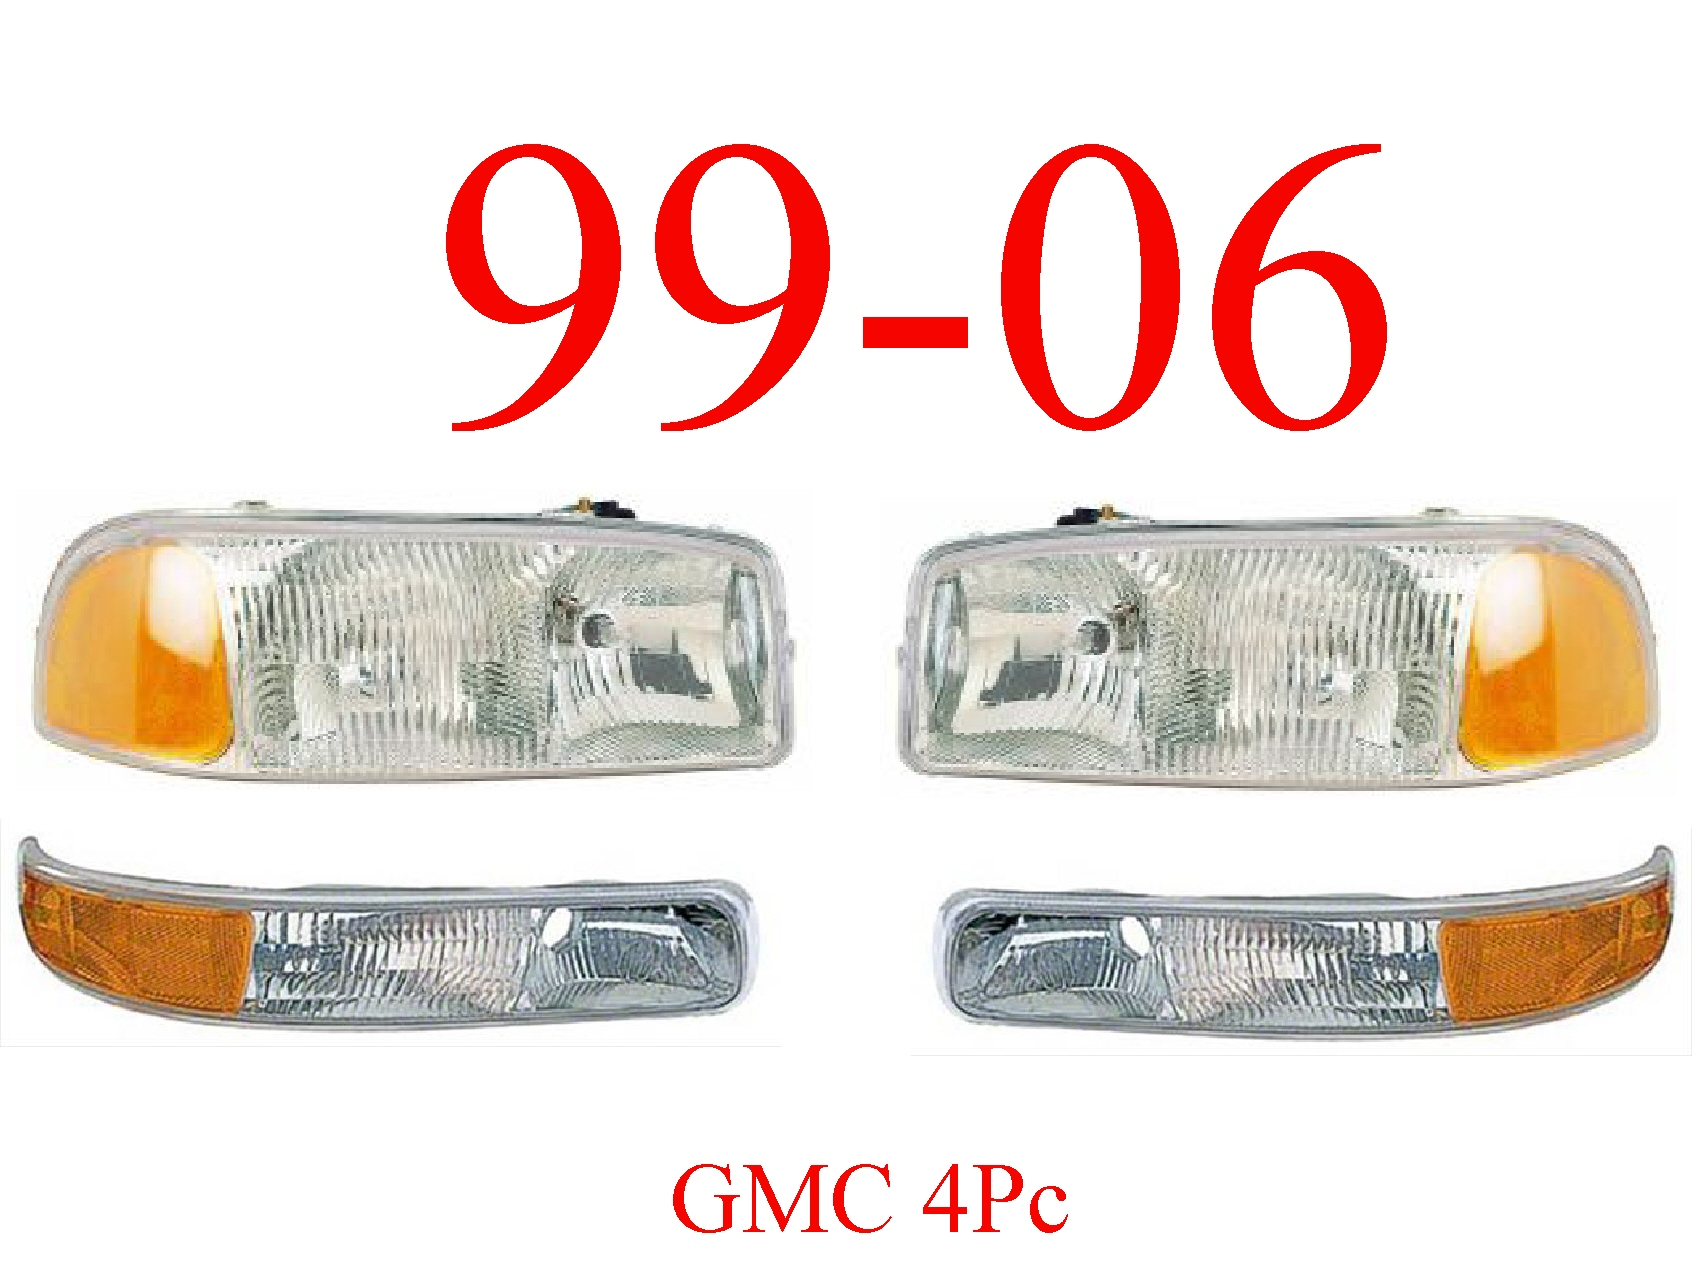 99-06 GMC Truck 4Pc Head & Park Light Set